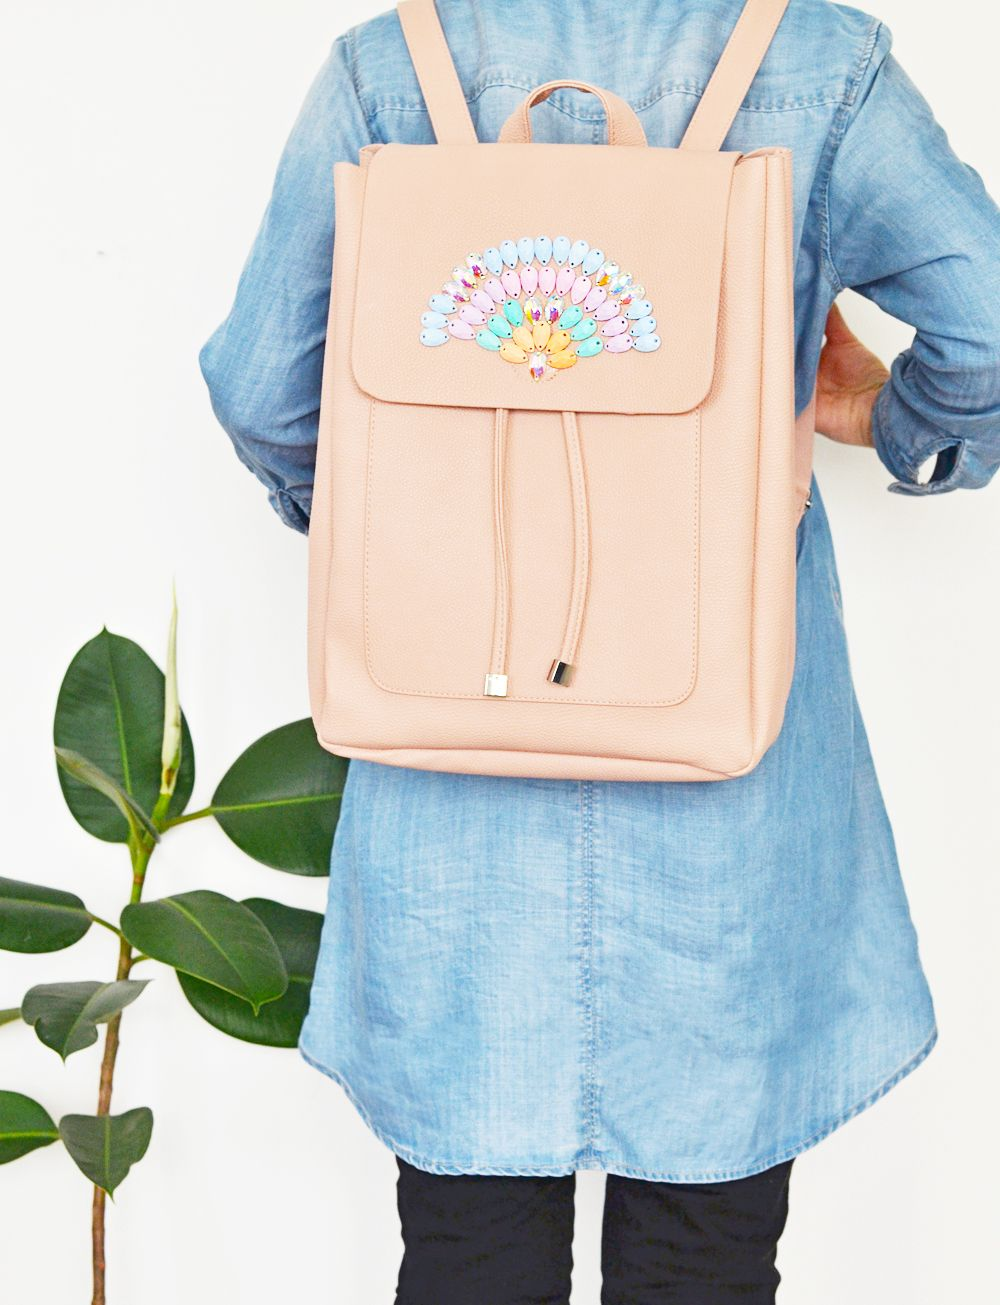 Diy pastel gemstone backpack project